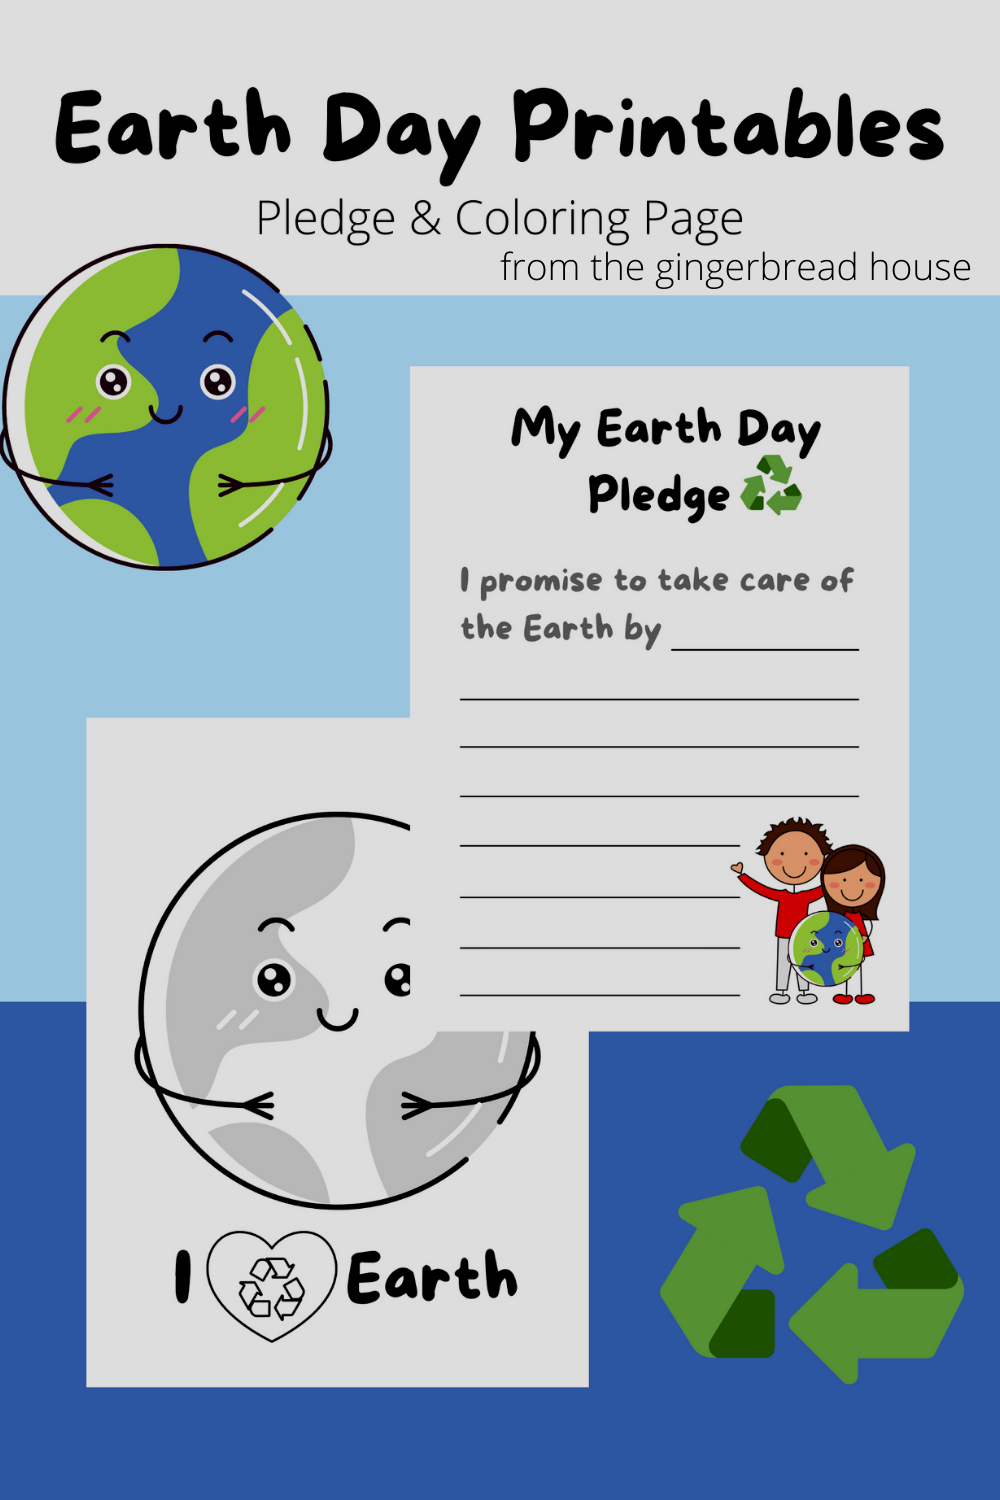 Earth Day pledge and colouring sheet